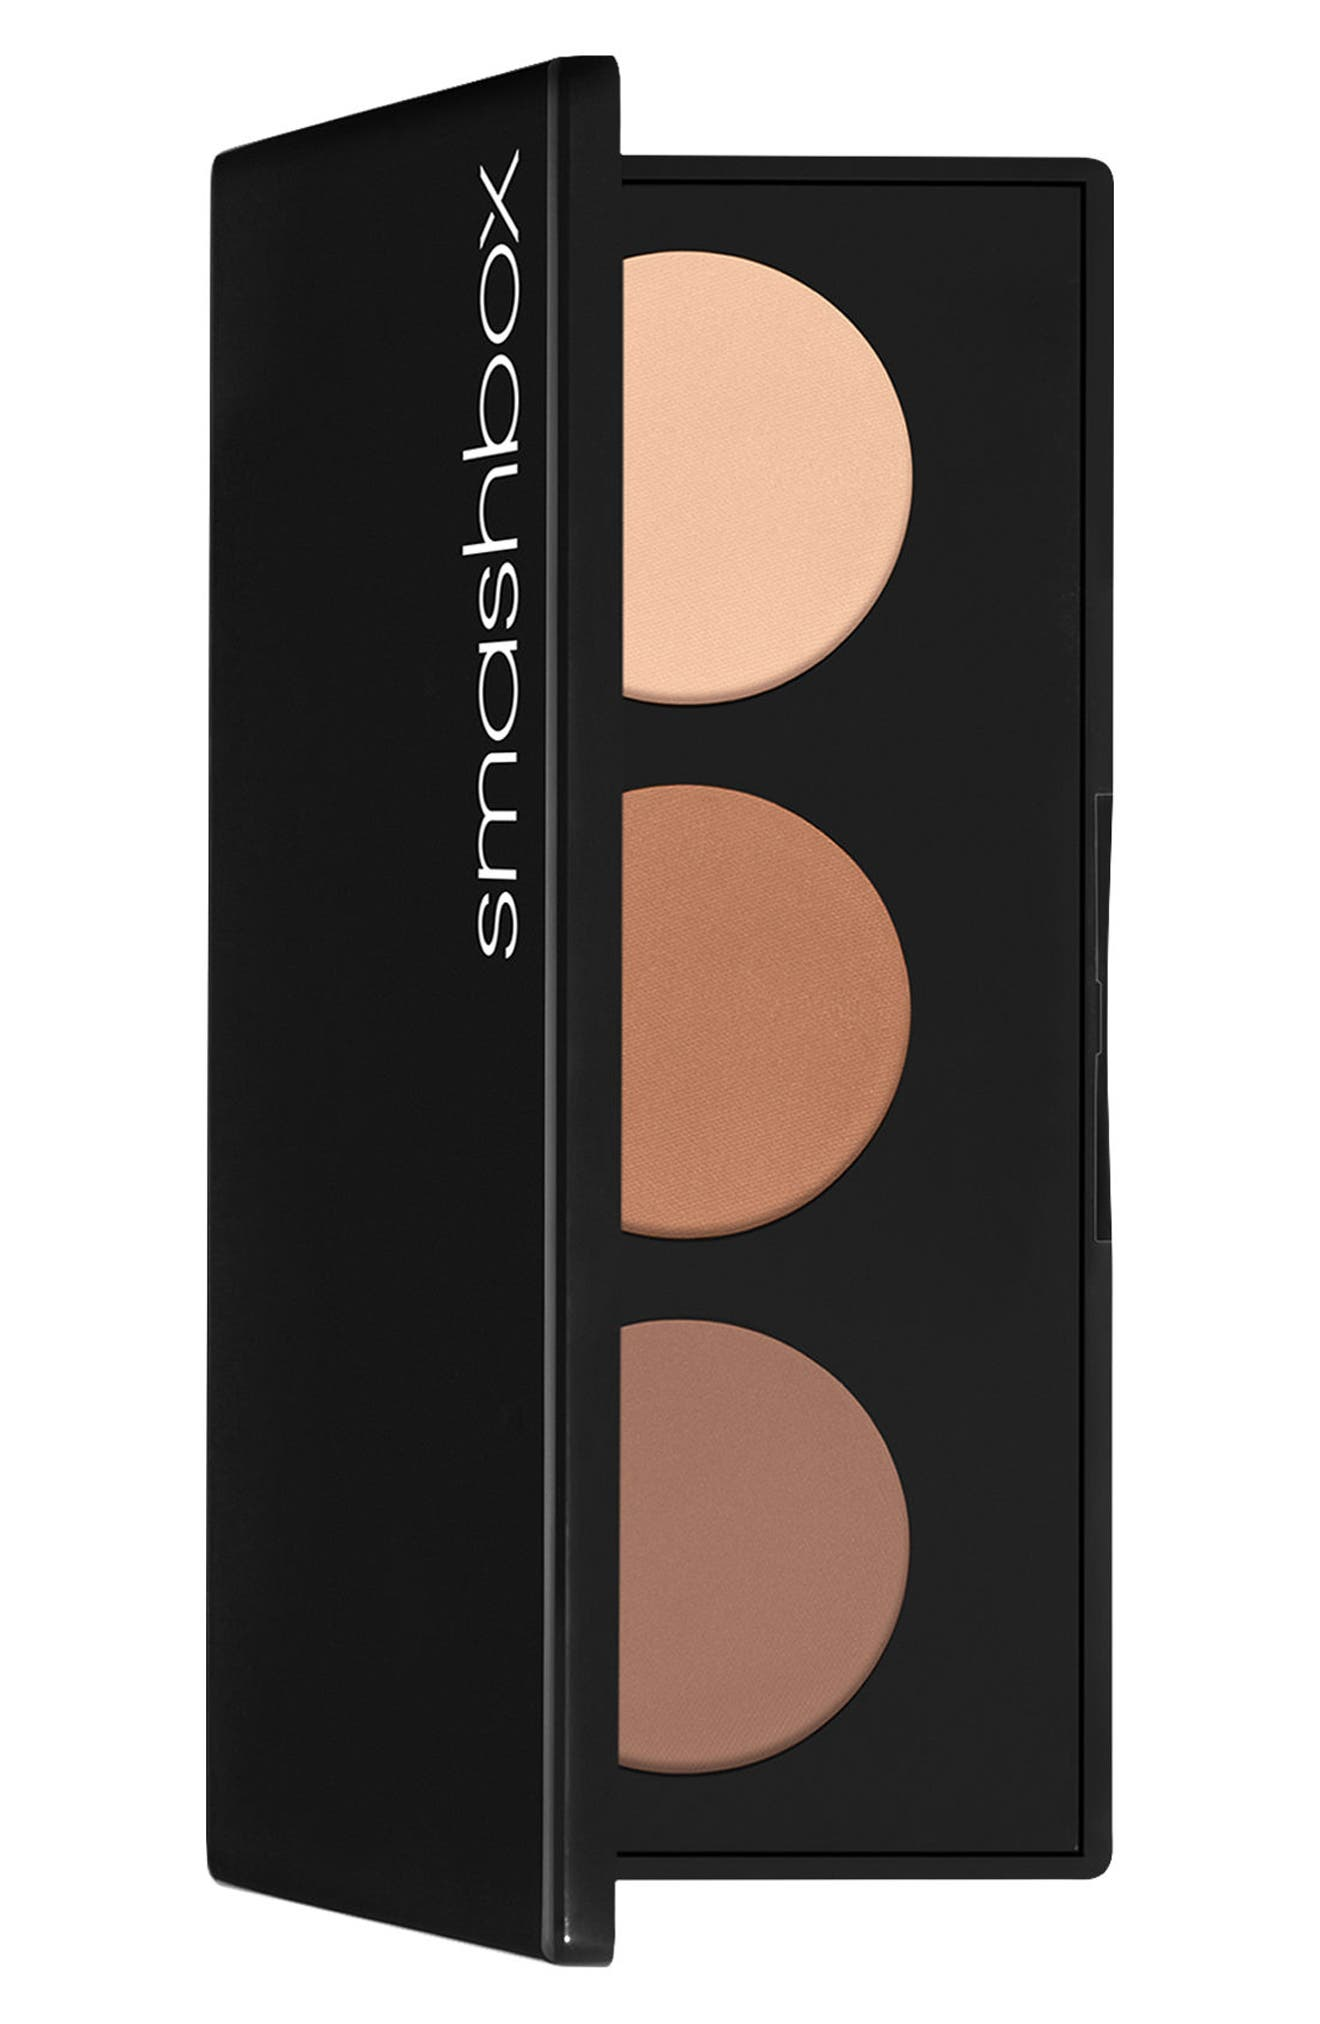 Smashbox Travel Contour Palette